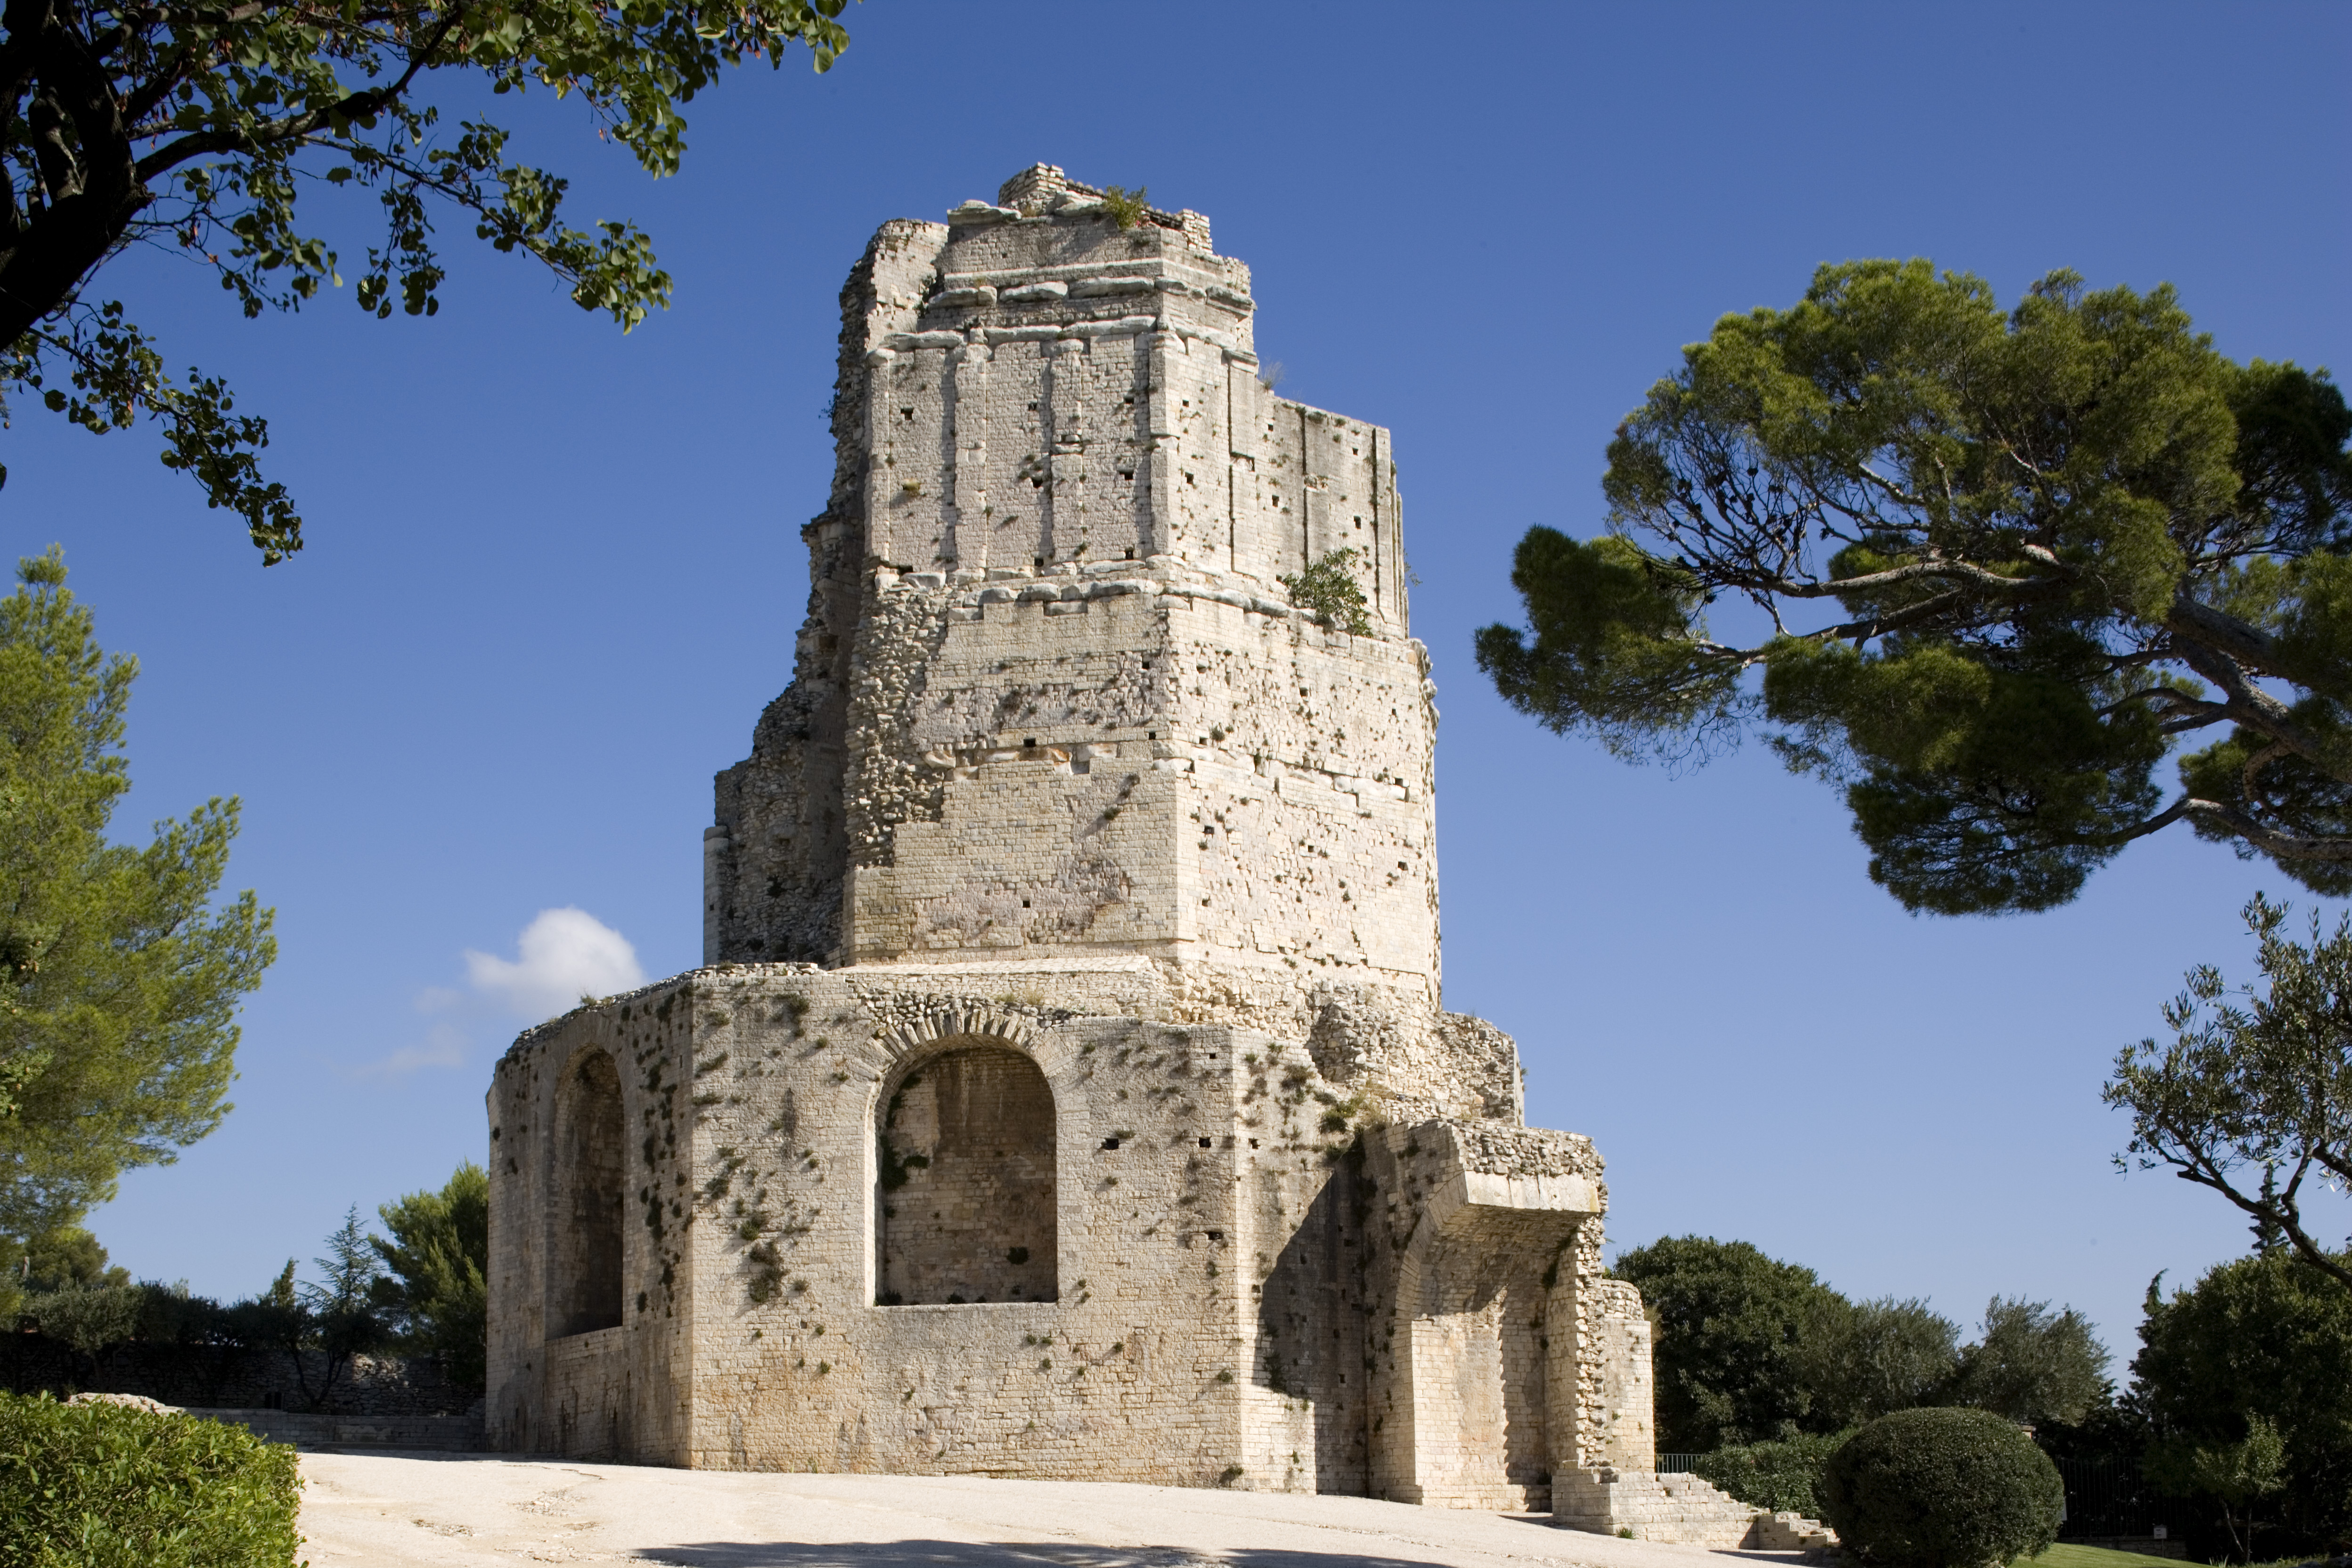 Tour magne wikiwand - Tour magne nimes ...